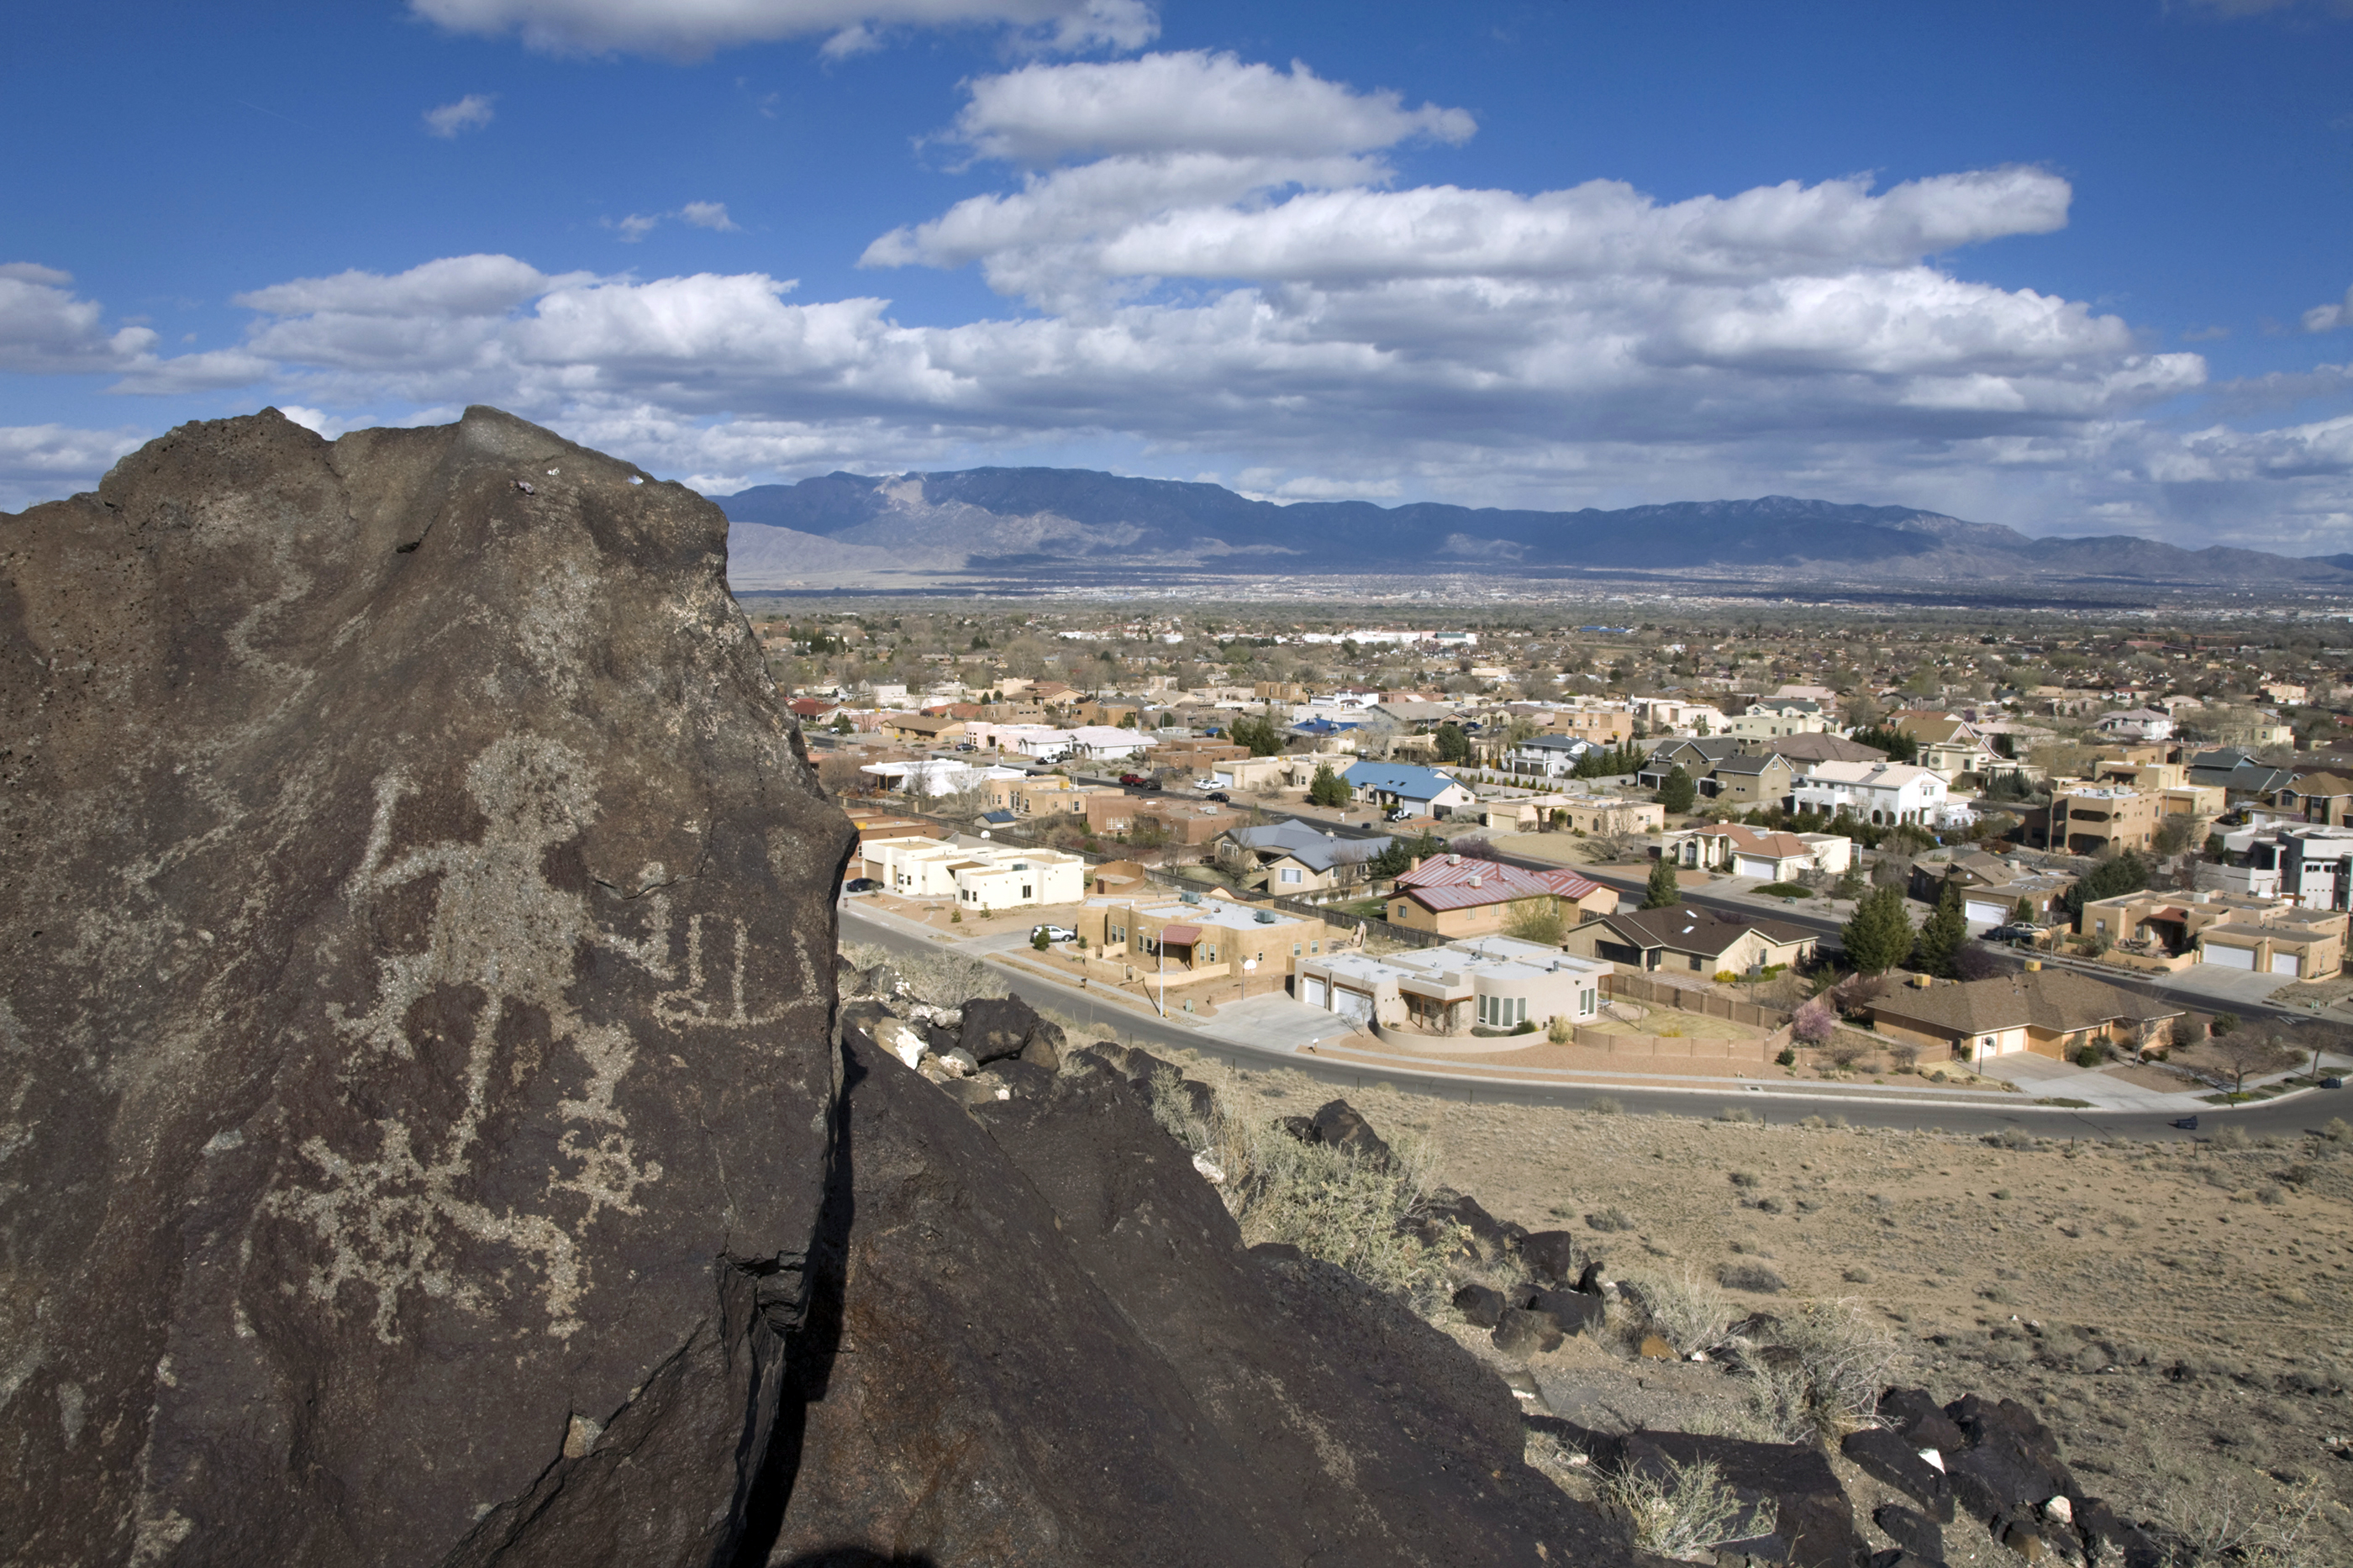 Prehistoric petroglyphs and heavy urbanization in the background.